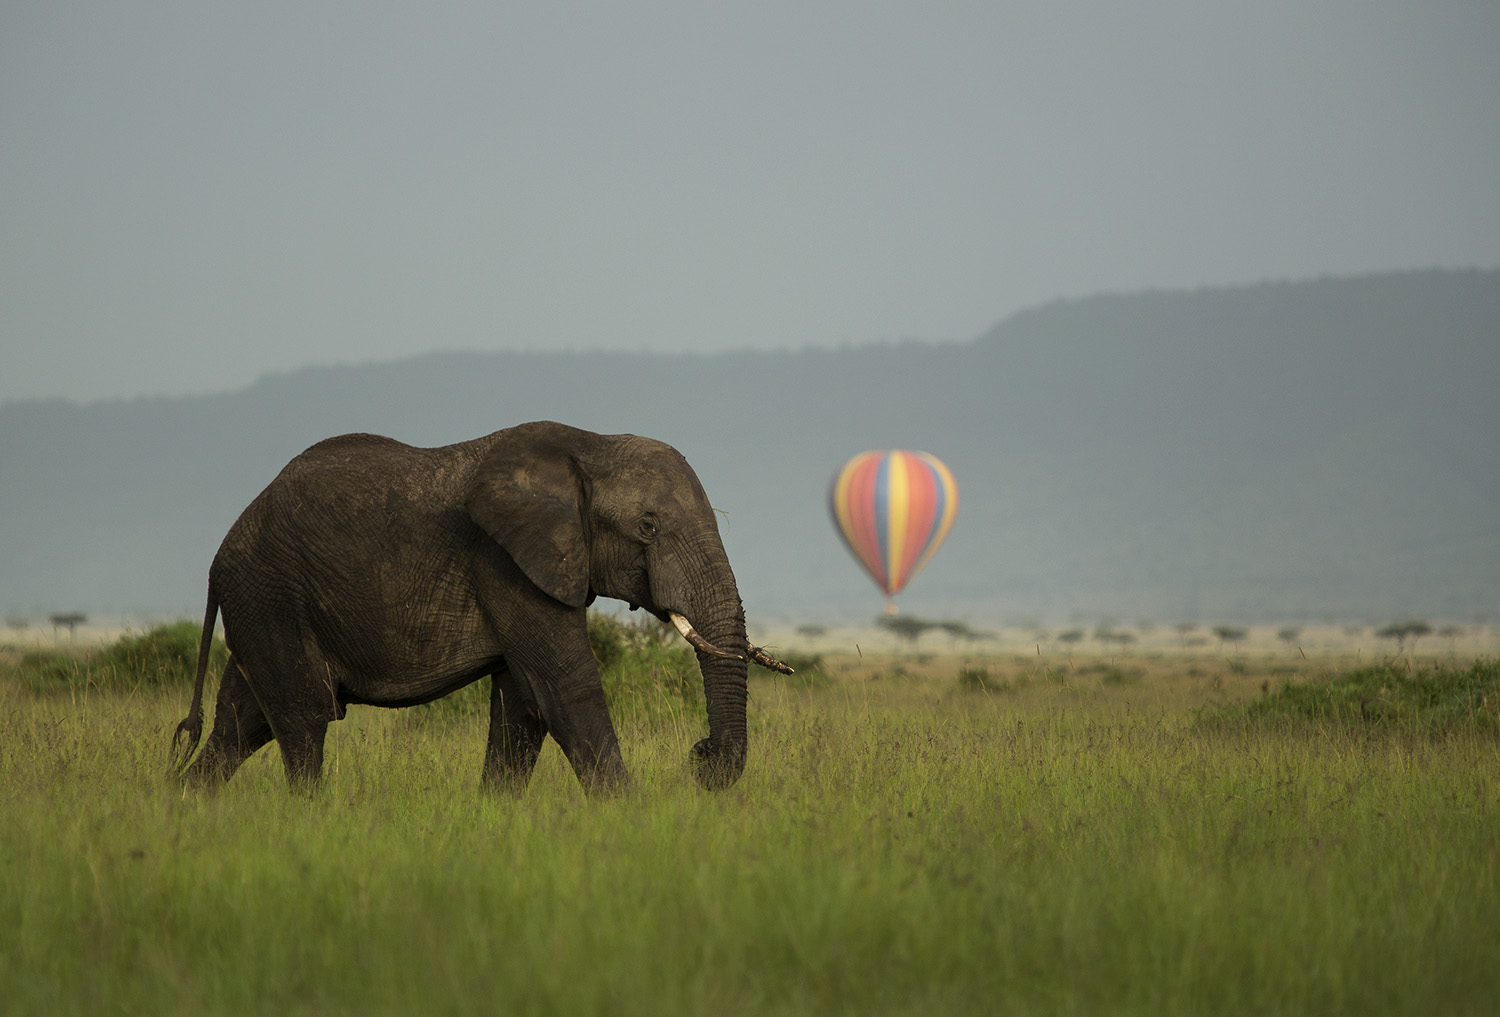 Elephant and balloon